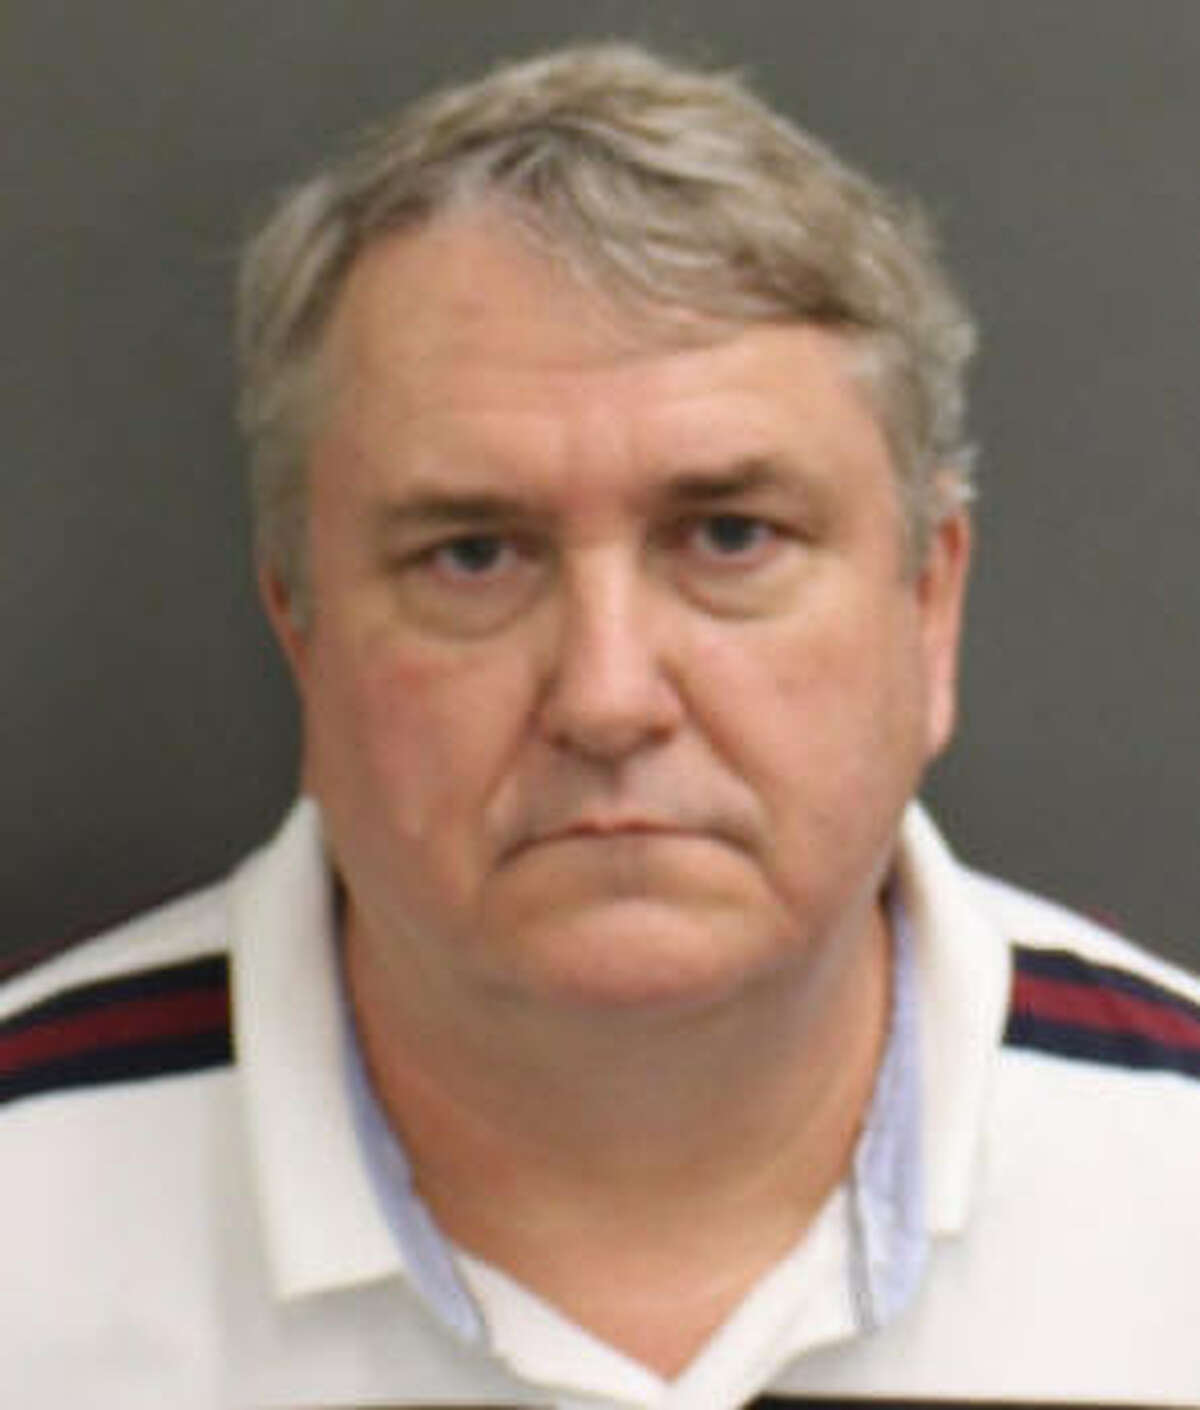 Mark Andrew Nichols of Austin, Texas is accused of flying to Orlando, Florida in order to have sex with a 9-year-old girl. Learn how human trafficking affects Texas up ahead.